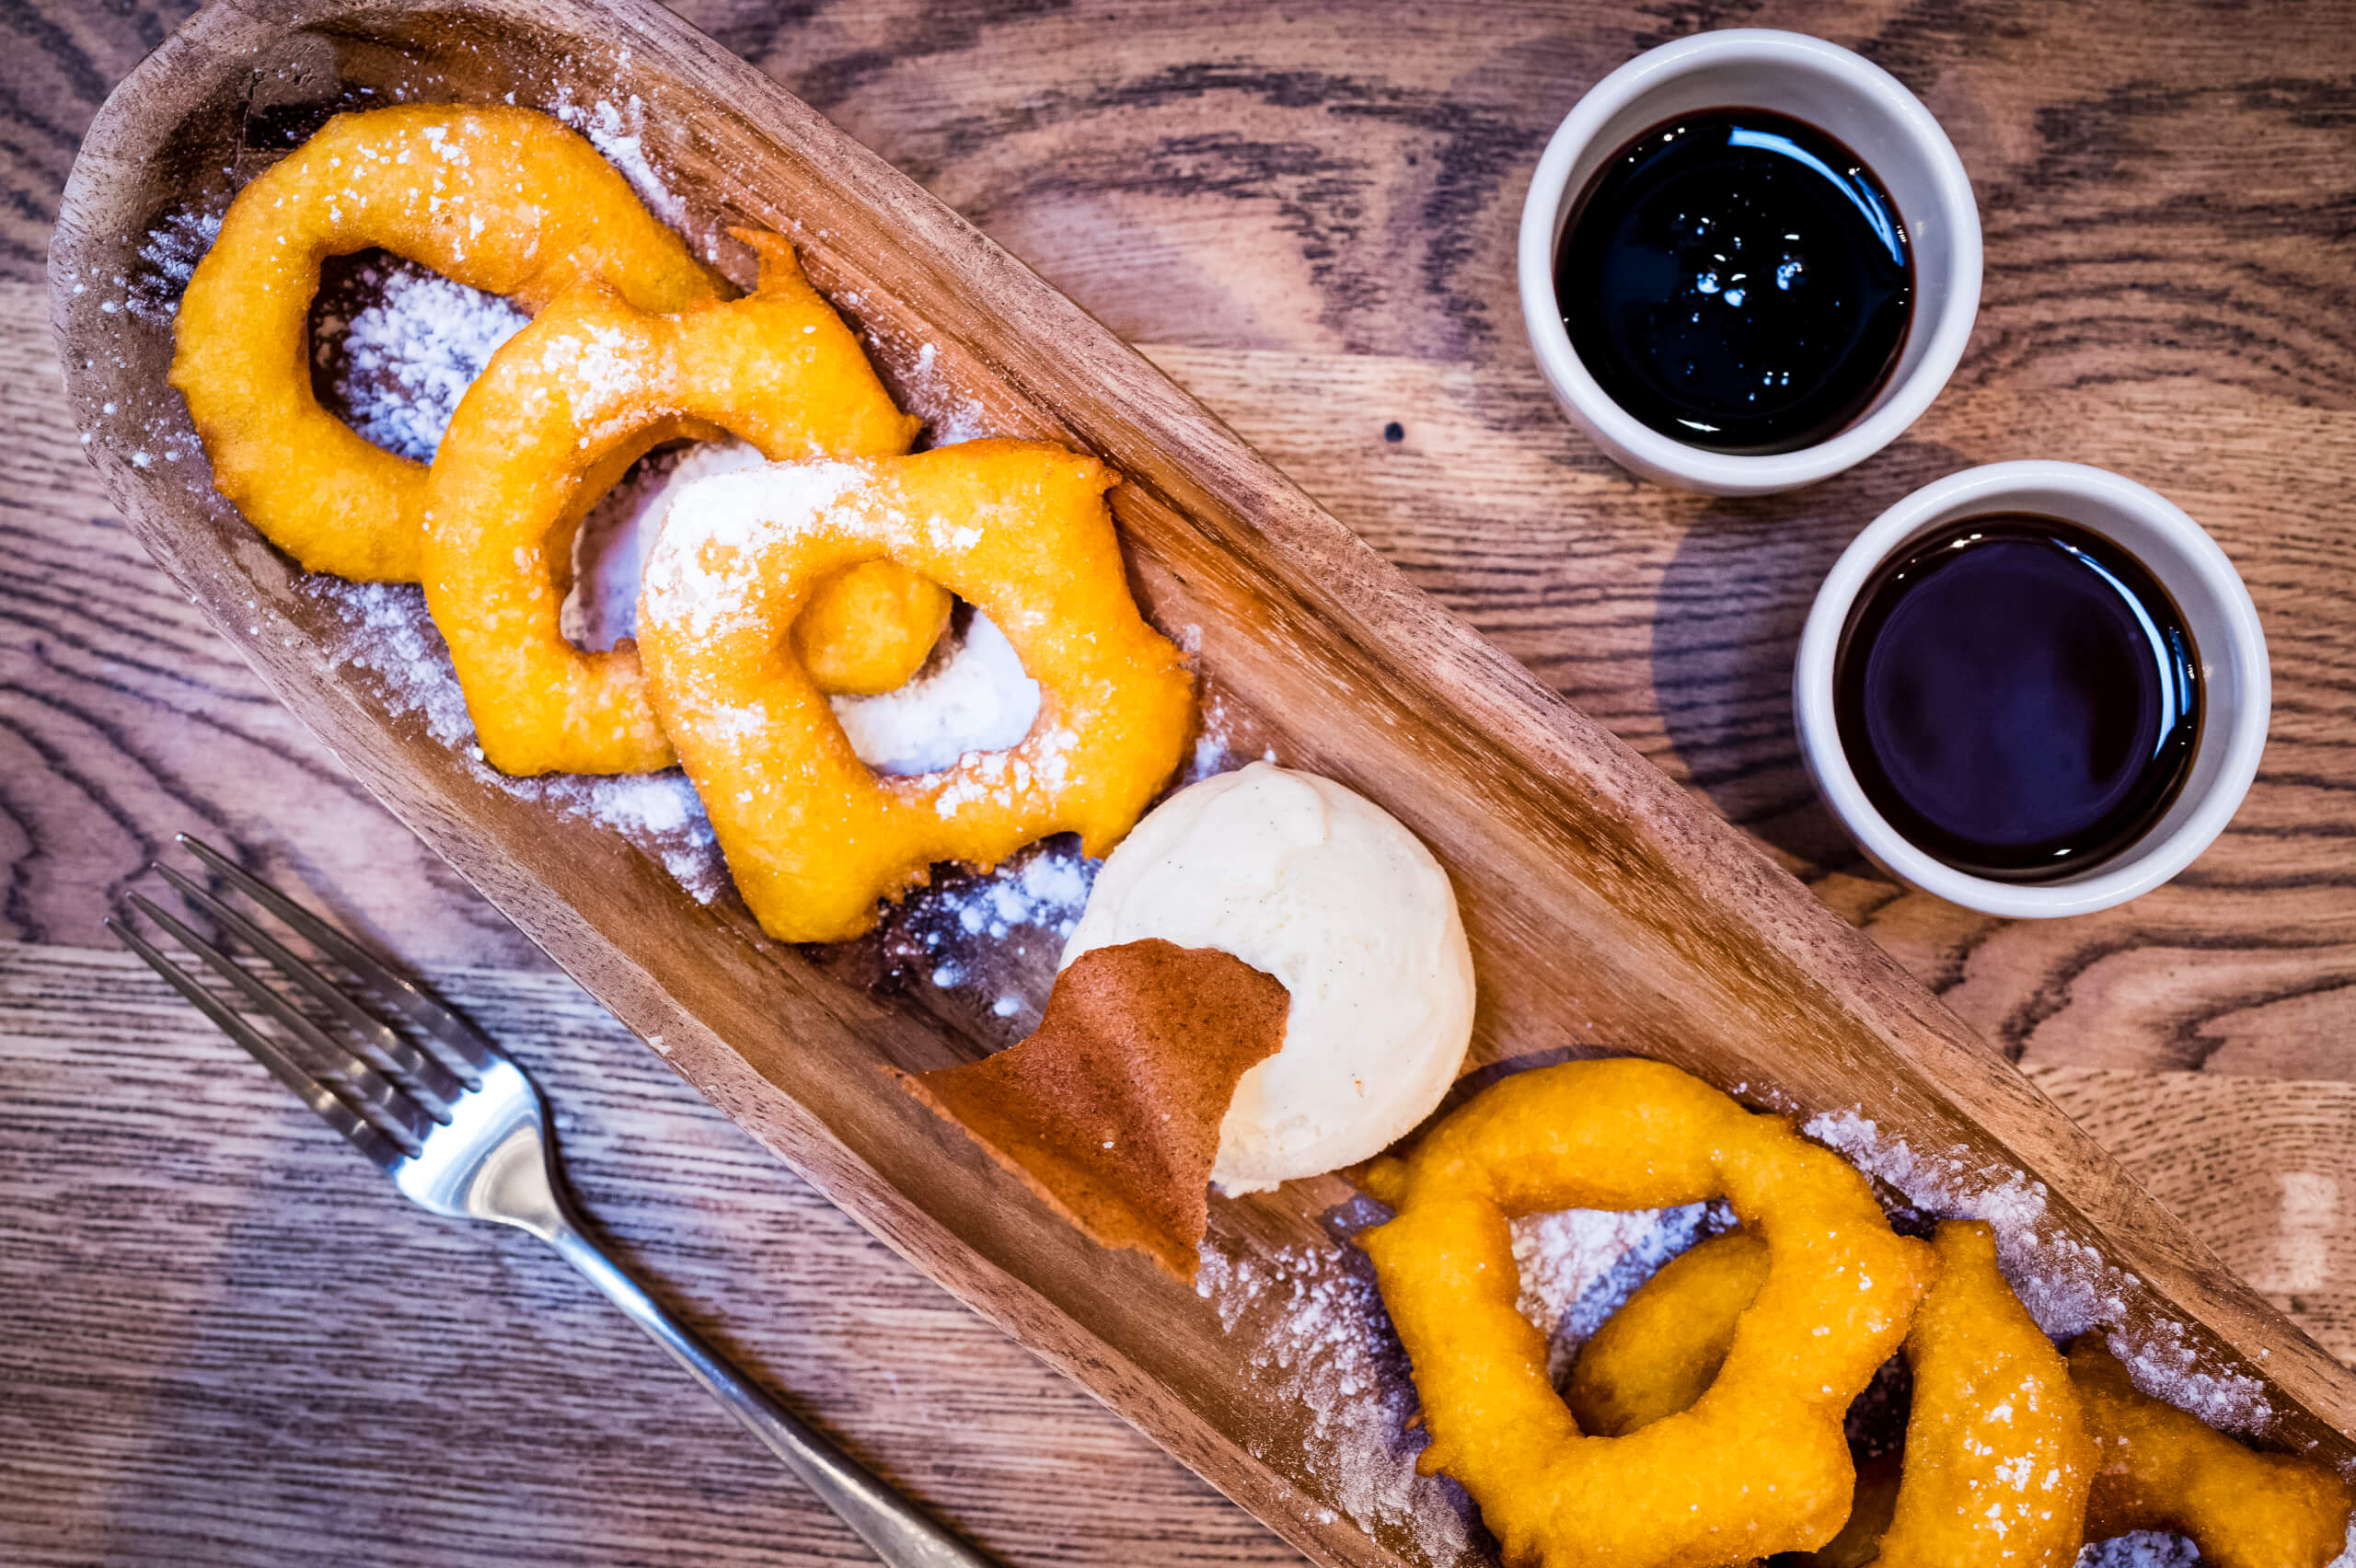 Top 8: Doughnuts for Chanukah in London